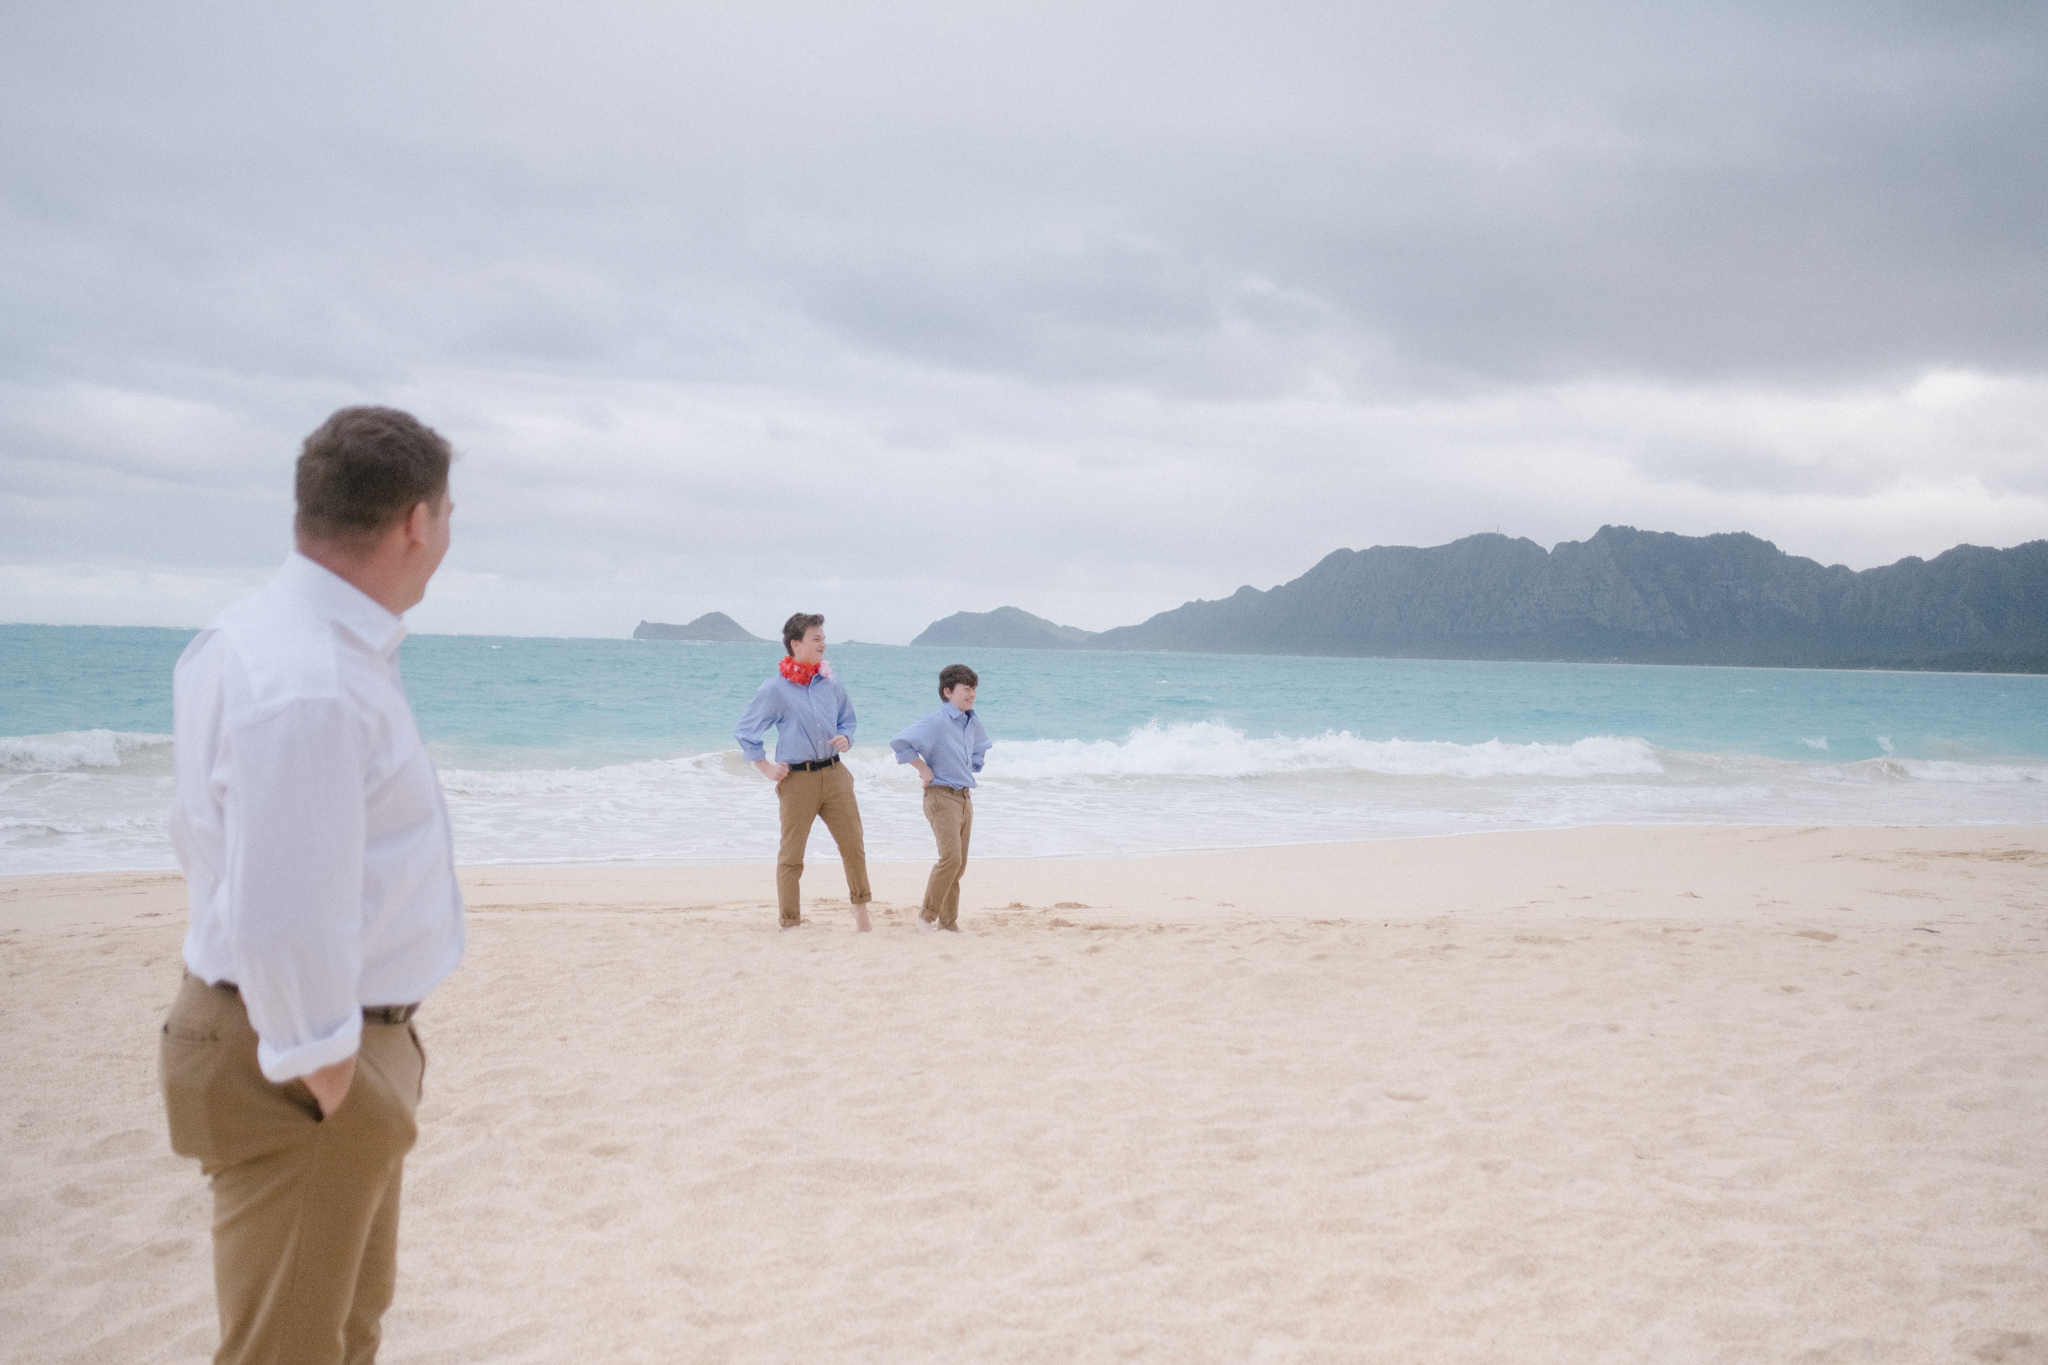 waimanalo_beach_wedding_photographer-3.jpg